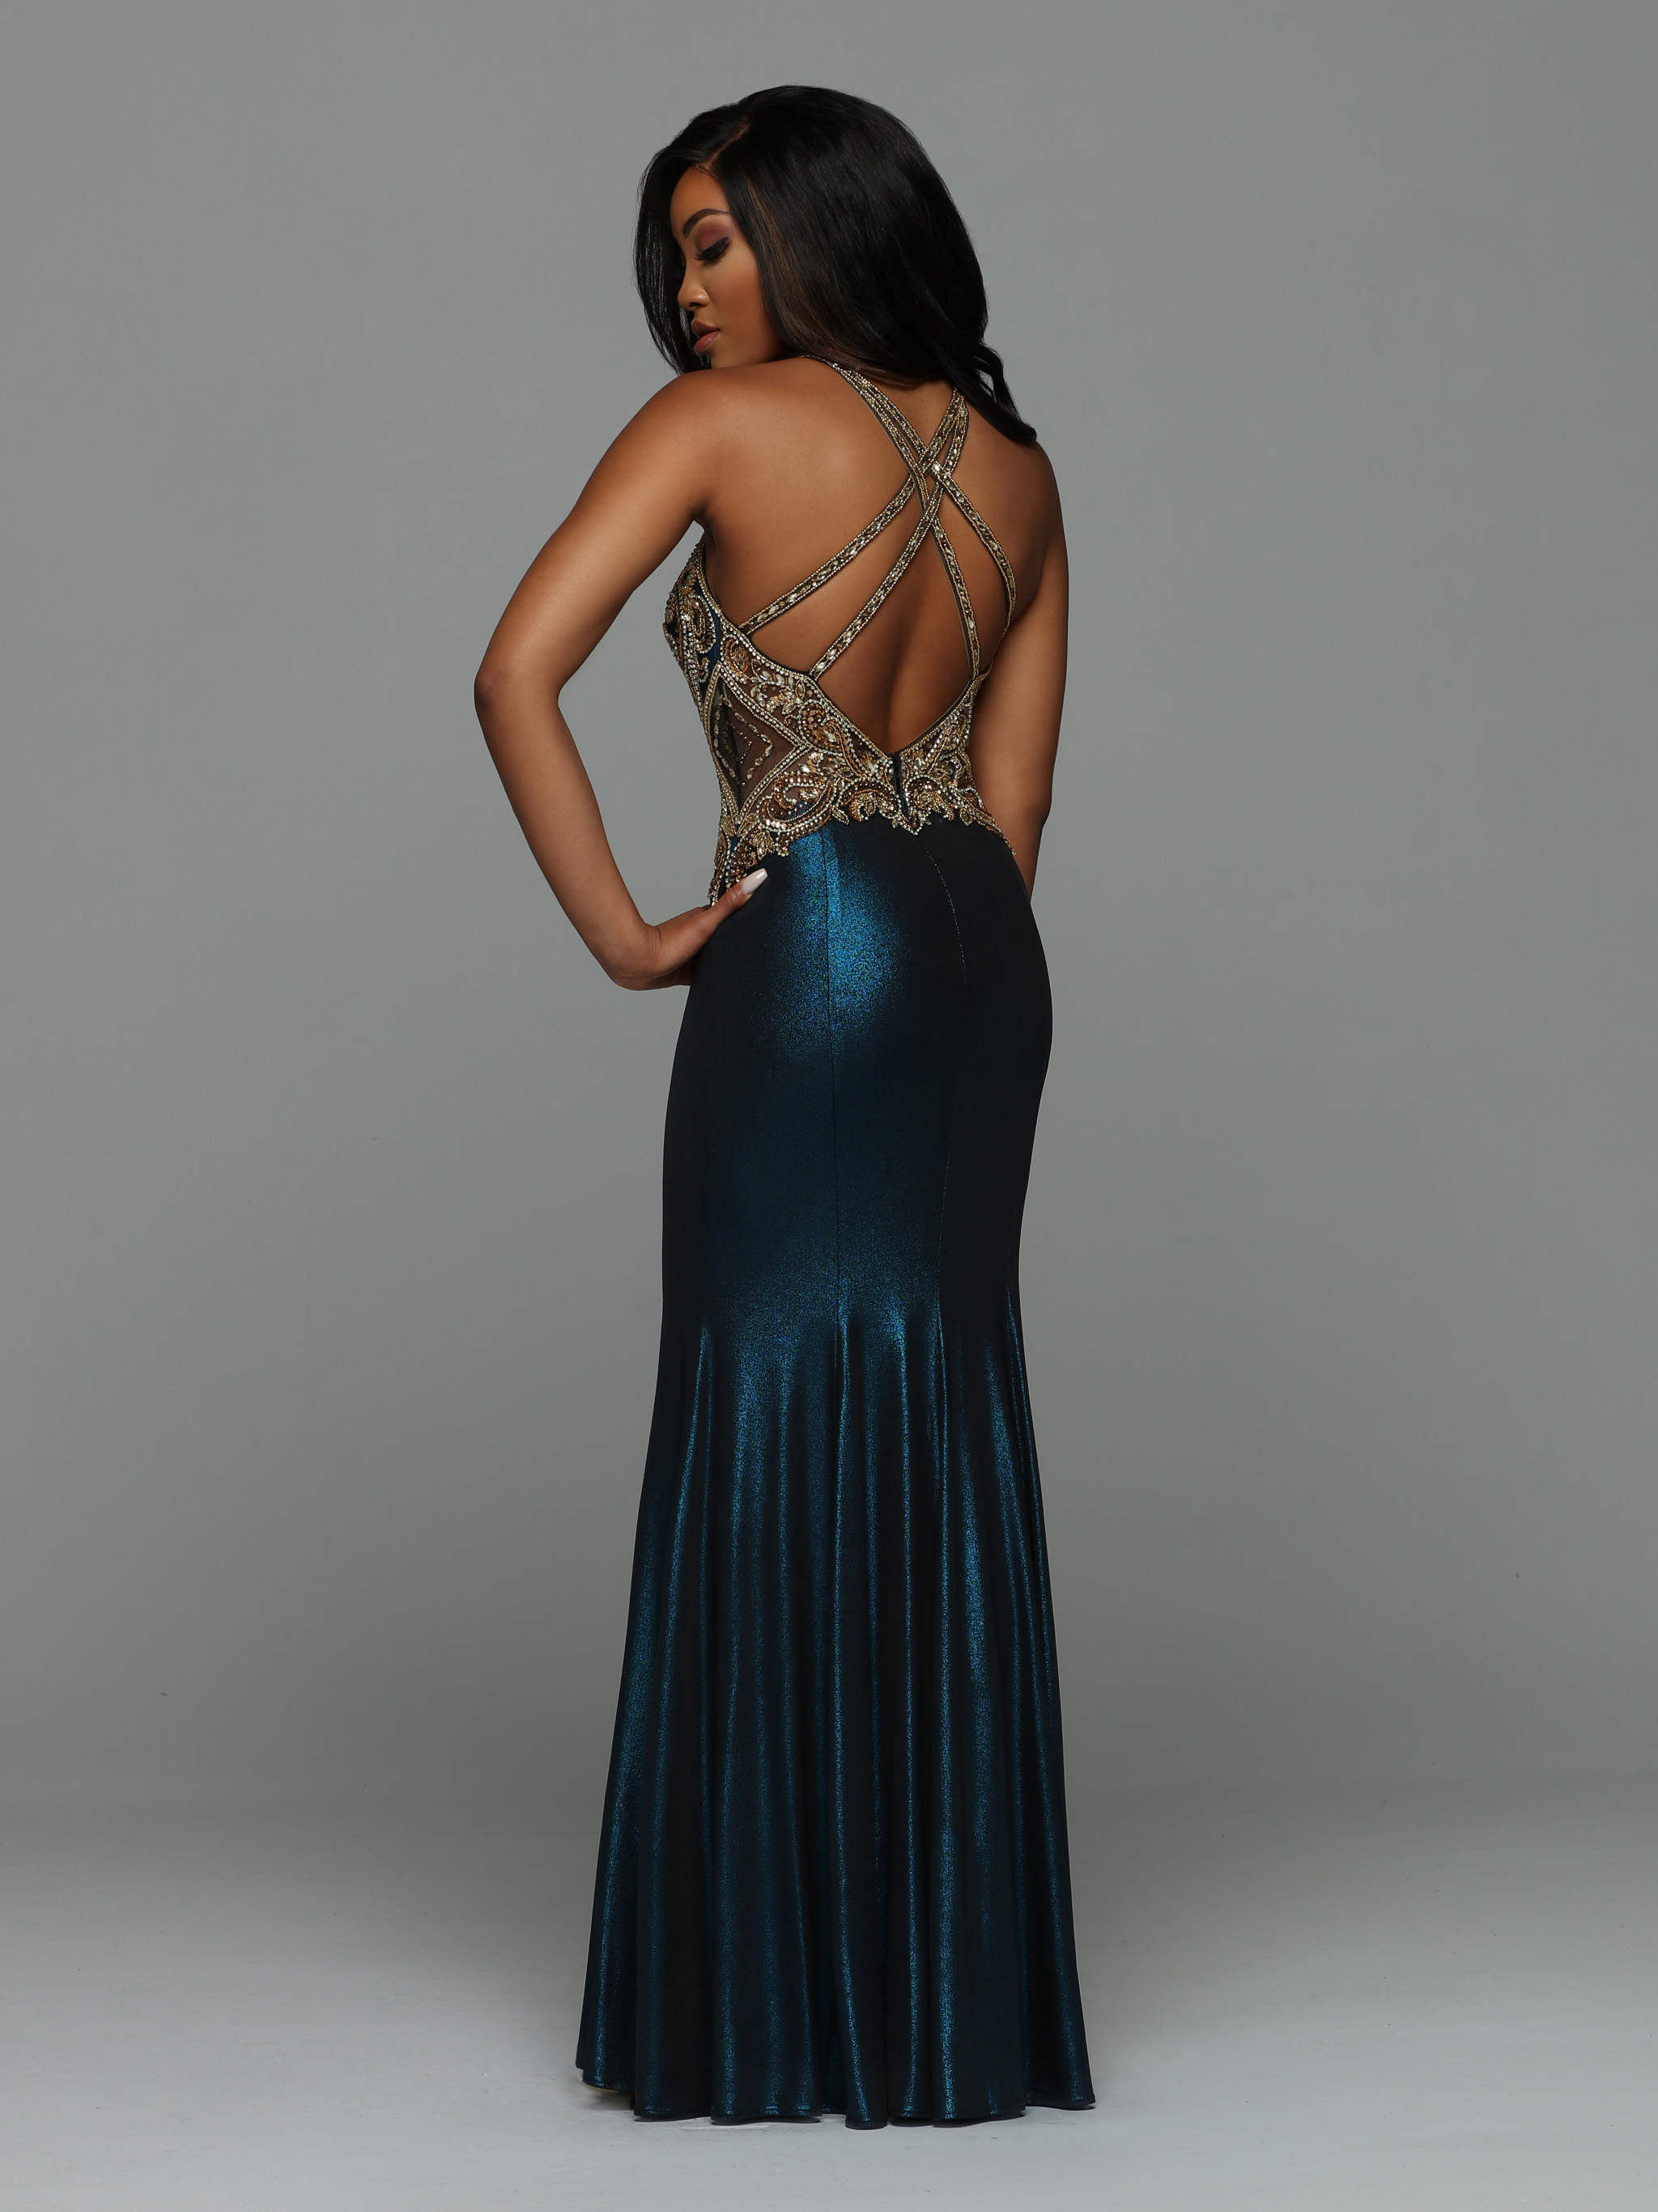 Image showing back view of style #72016